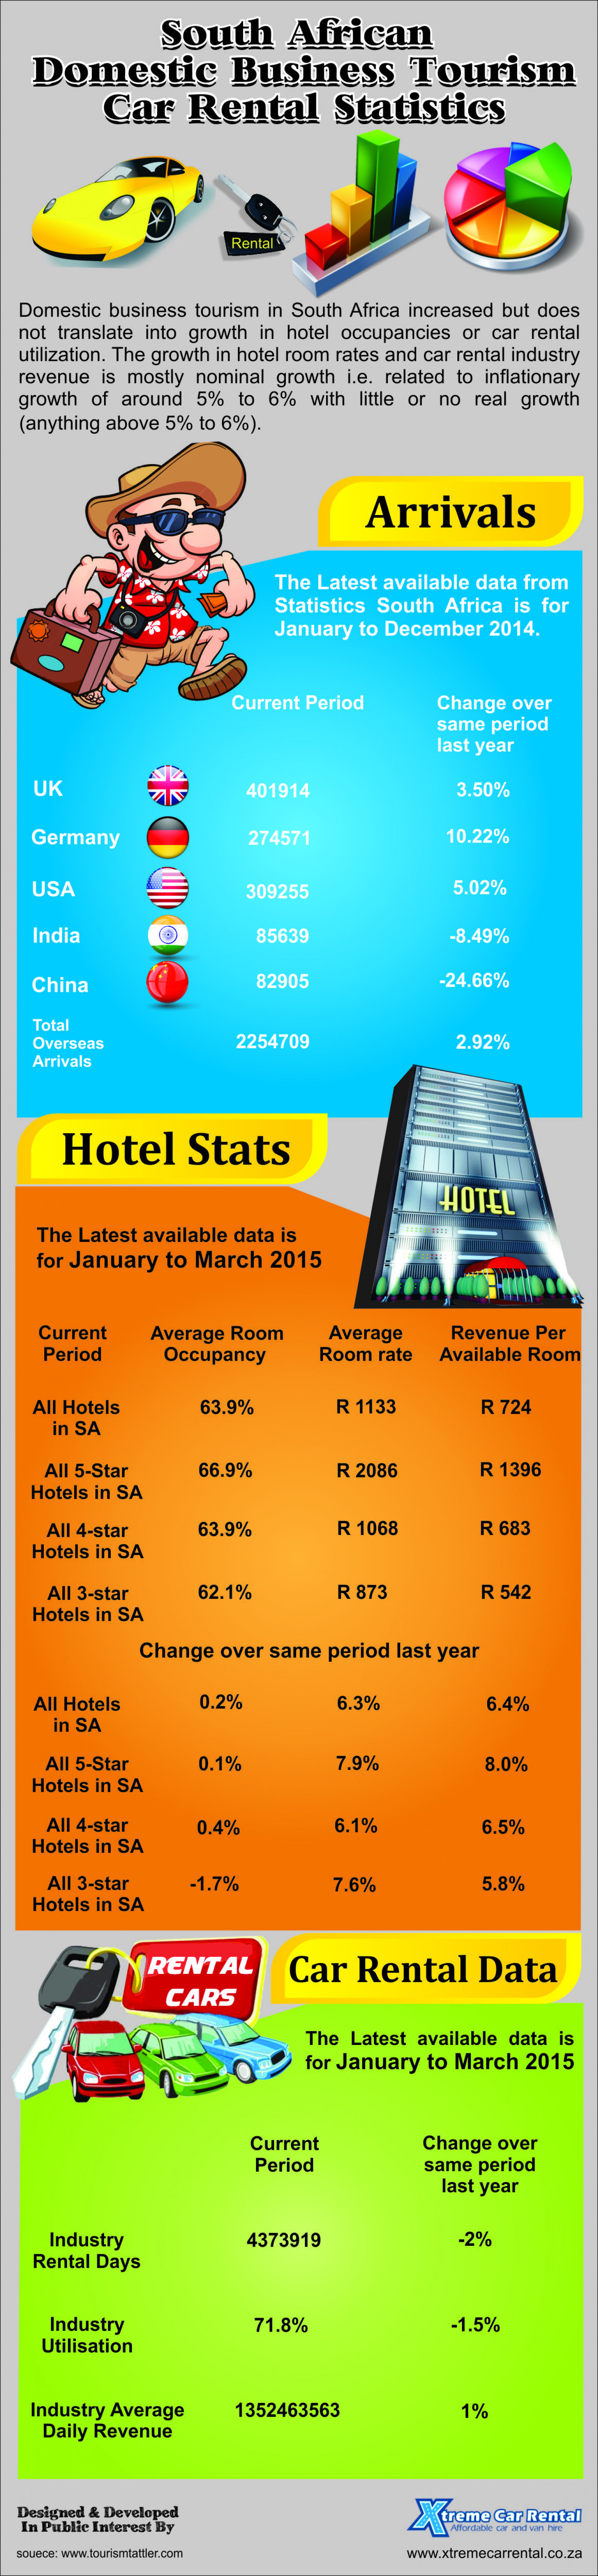 South African Domestic Business Tourism Car Rental Statistics Infographic